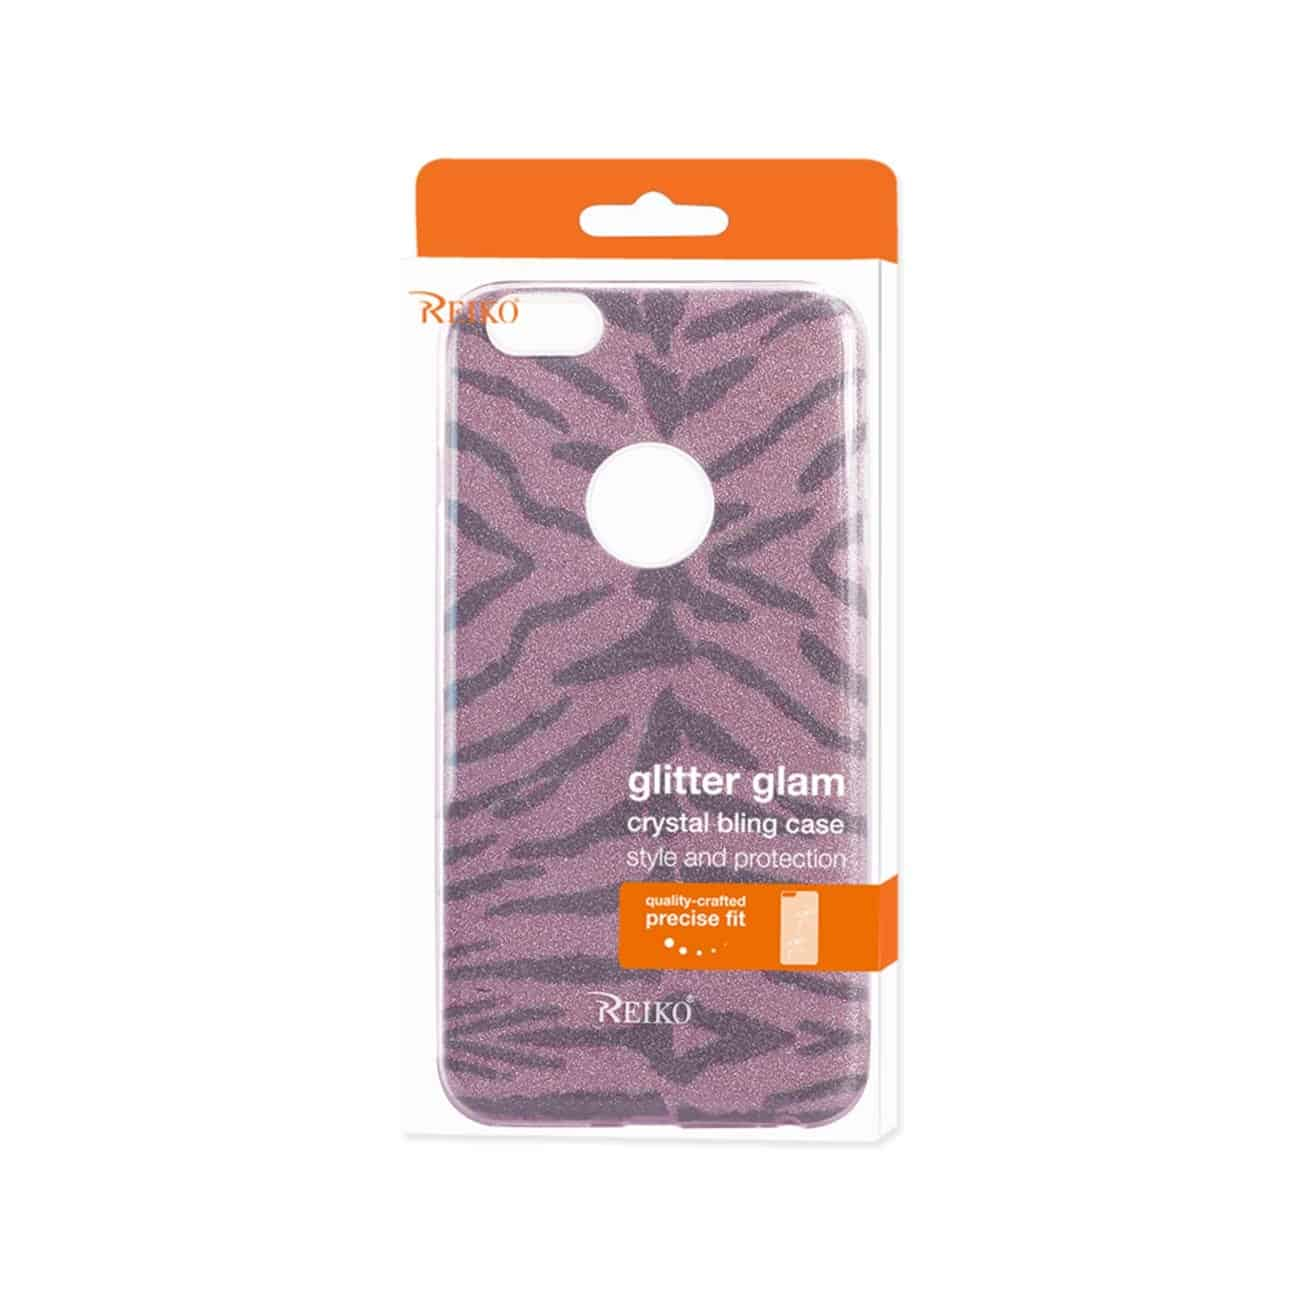 IPHONE 6 PLUS/ 6S PLUS SHINE GLITTER SHIMMER TIGER STRIPE HYBRID CASE IN HOT PINK